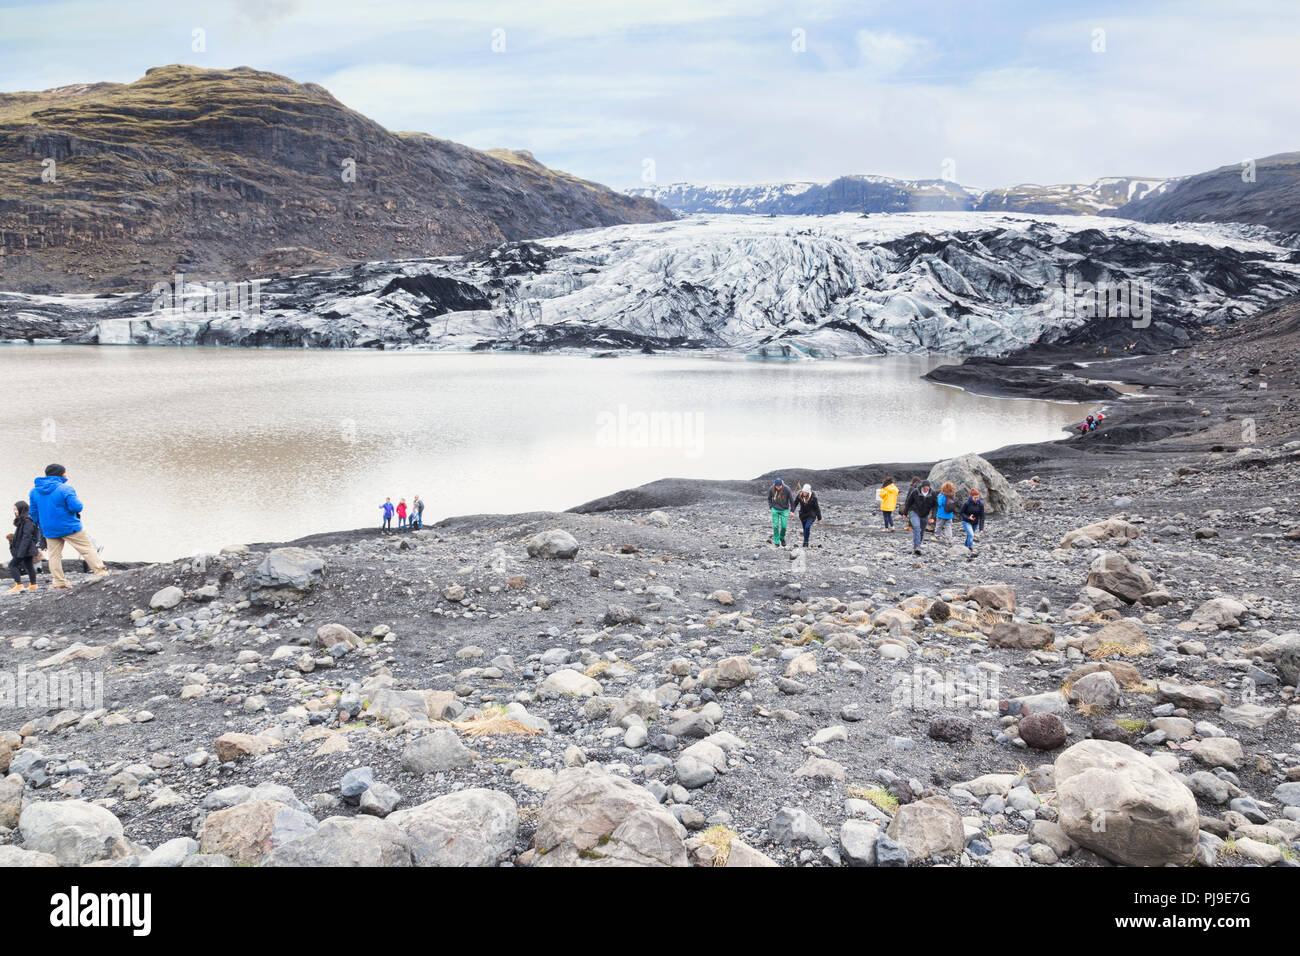 21 April 2018:  South Iceland - Tourists at Solheimajokull Glacier Tongue and glacial lake. - Stock Image